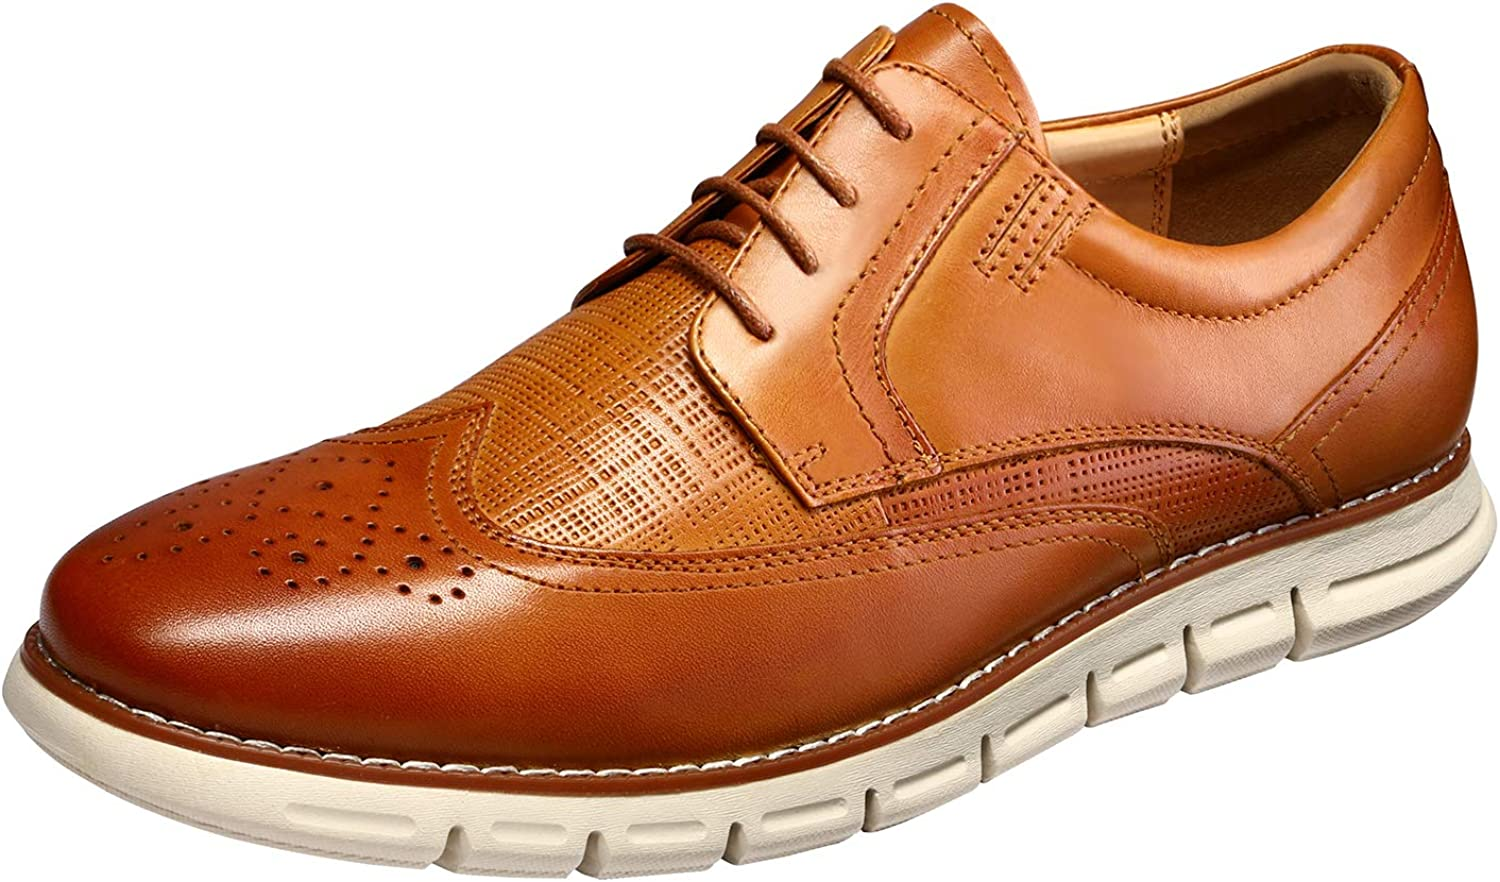 Bruno Marc Men's Oxford Dress Sneakers Casual Leather Dress Shoes